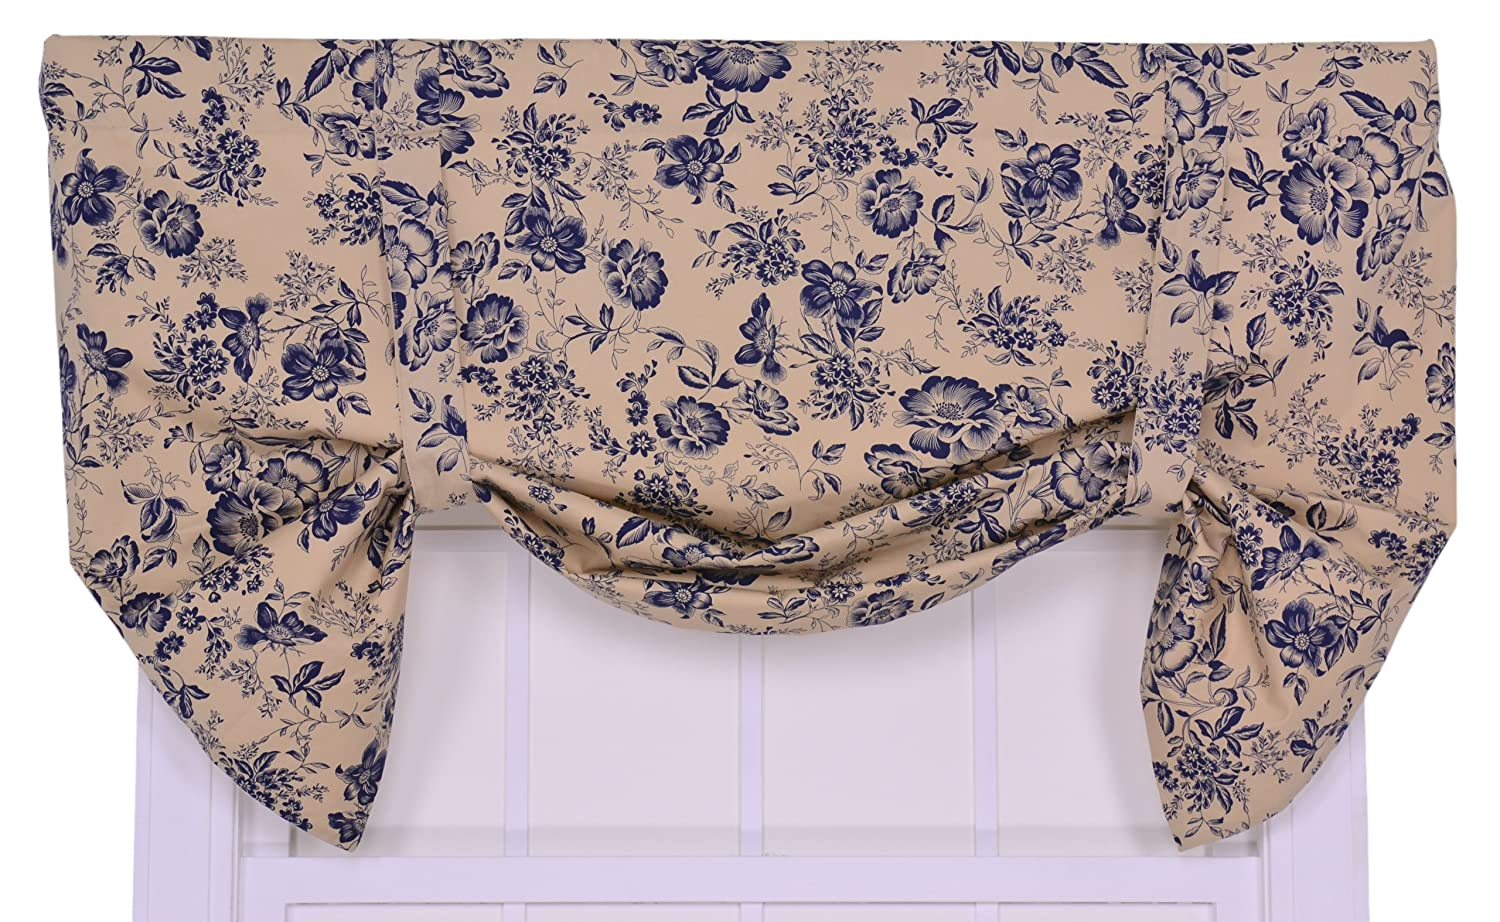 Ellis Curtain Palmer Floral Toile Lined Tie-Up Valance Window Curtain, Navy 730462384829